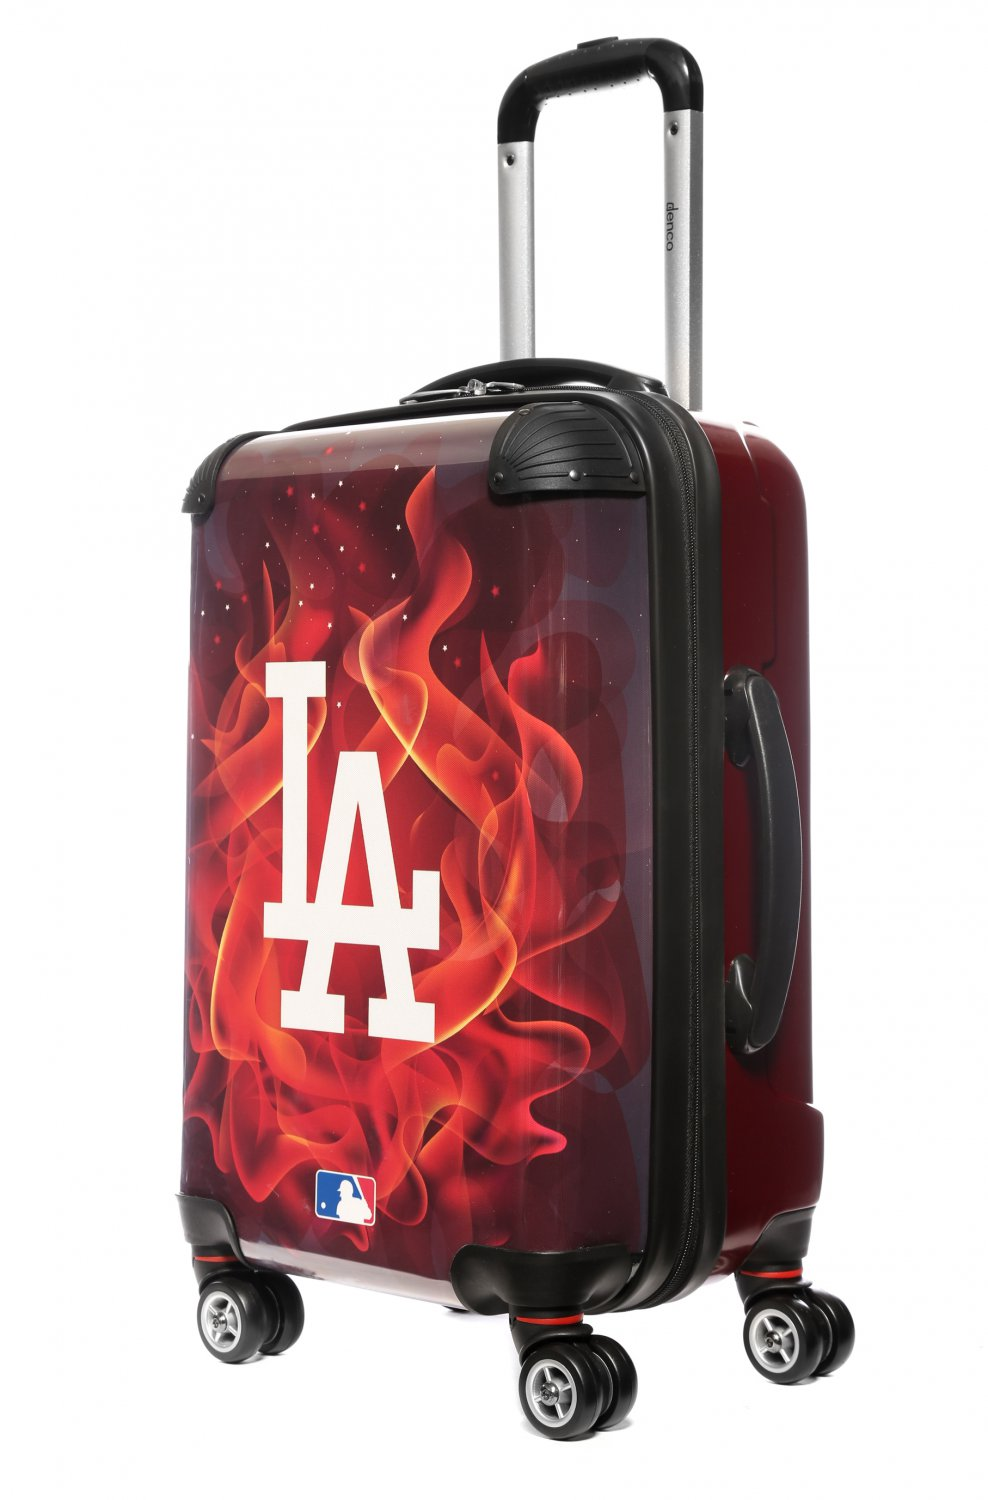 """Los Angeles Dodgers, 21"""" Clear Poly Carry-On Luggage by Kaybull #LAD12"""